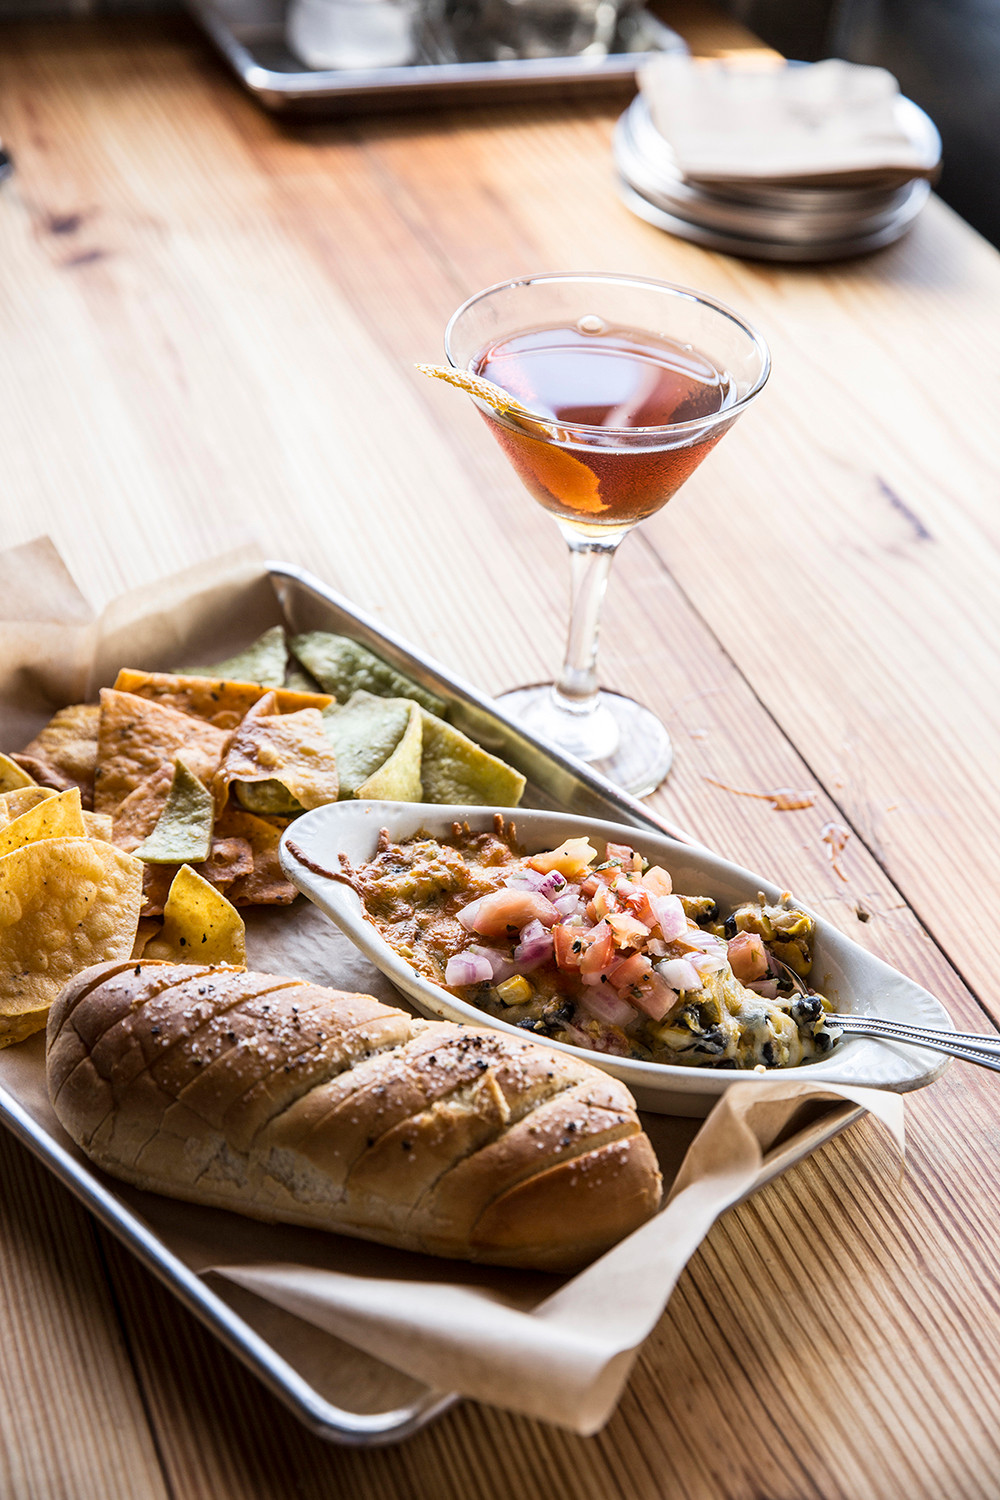 Hot Black Bean & Corn Dip with house chips & baked bread and a bourbon drink at Mary Jane Bourbon & Smokehouse